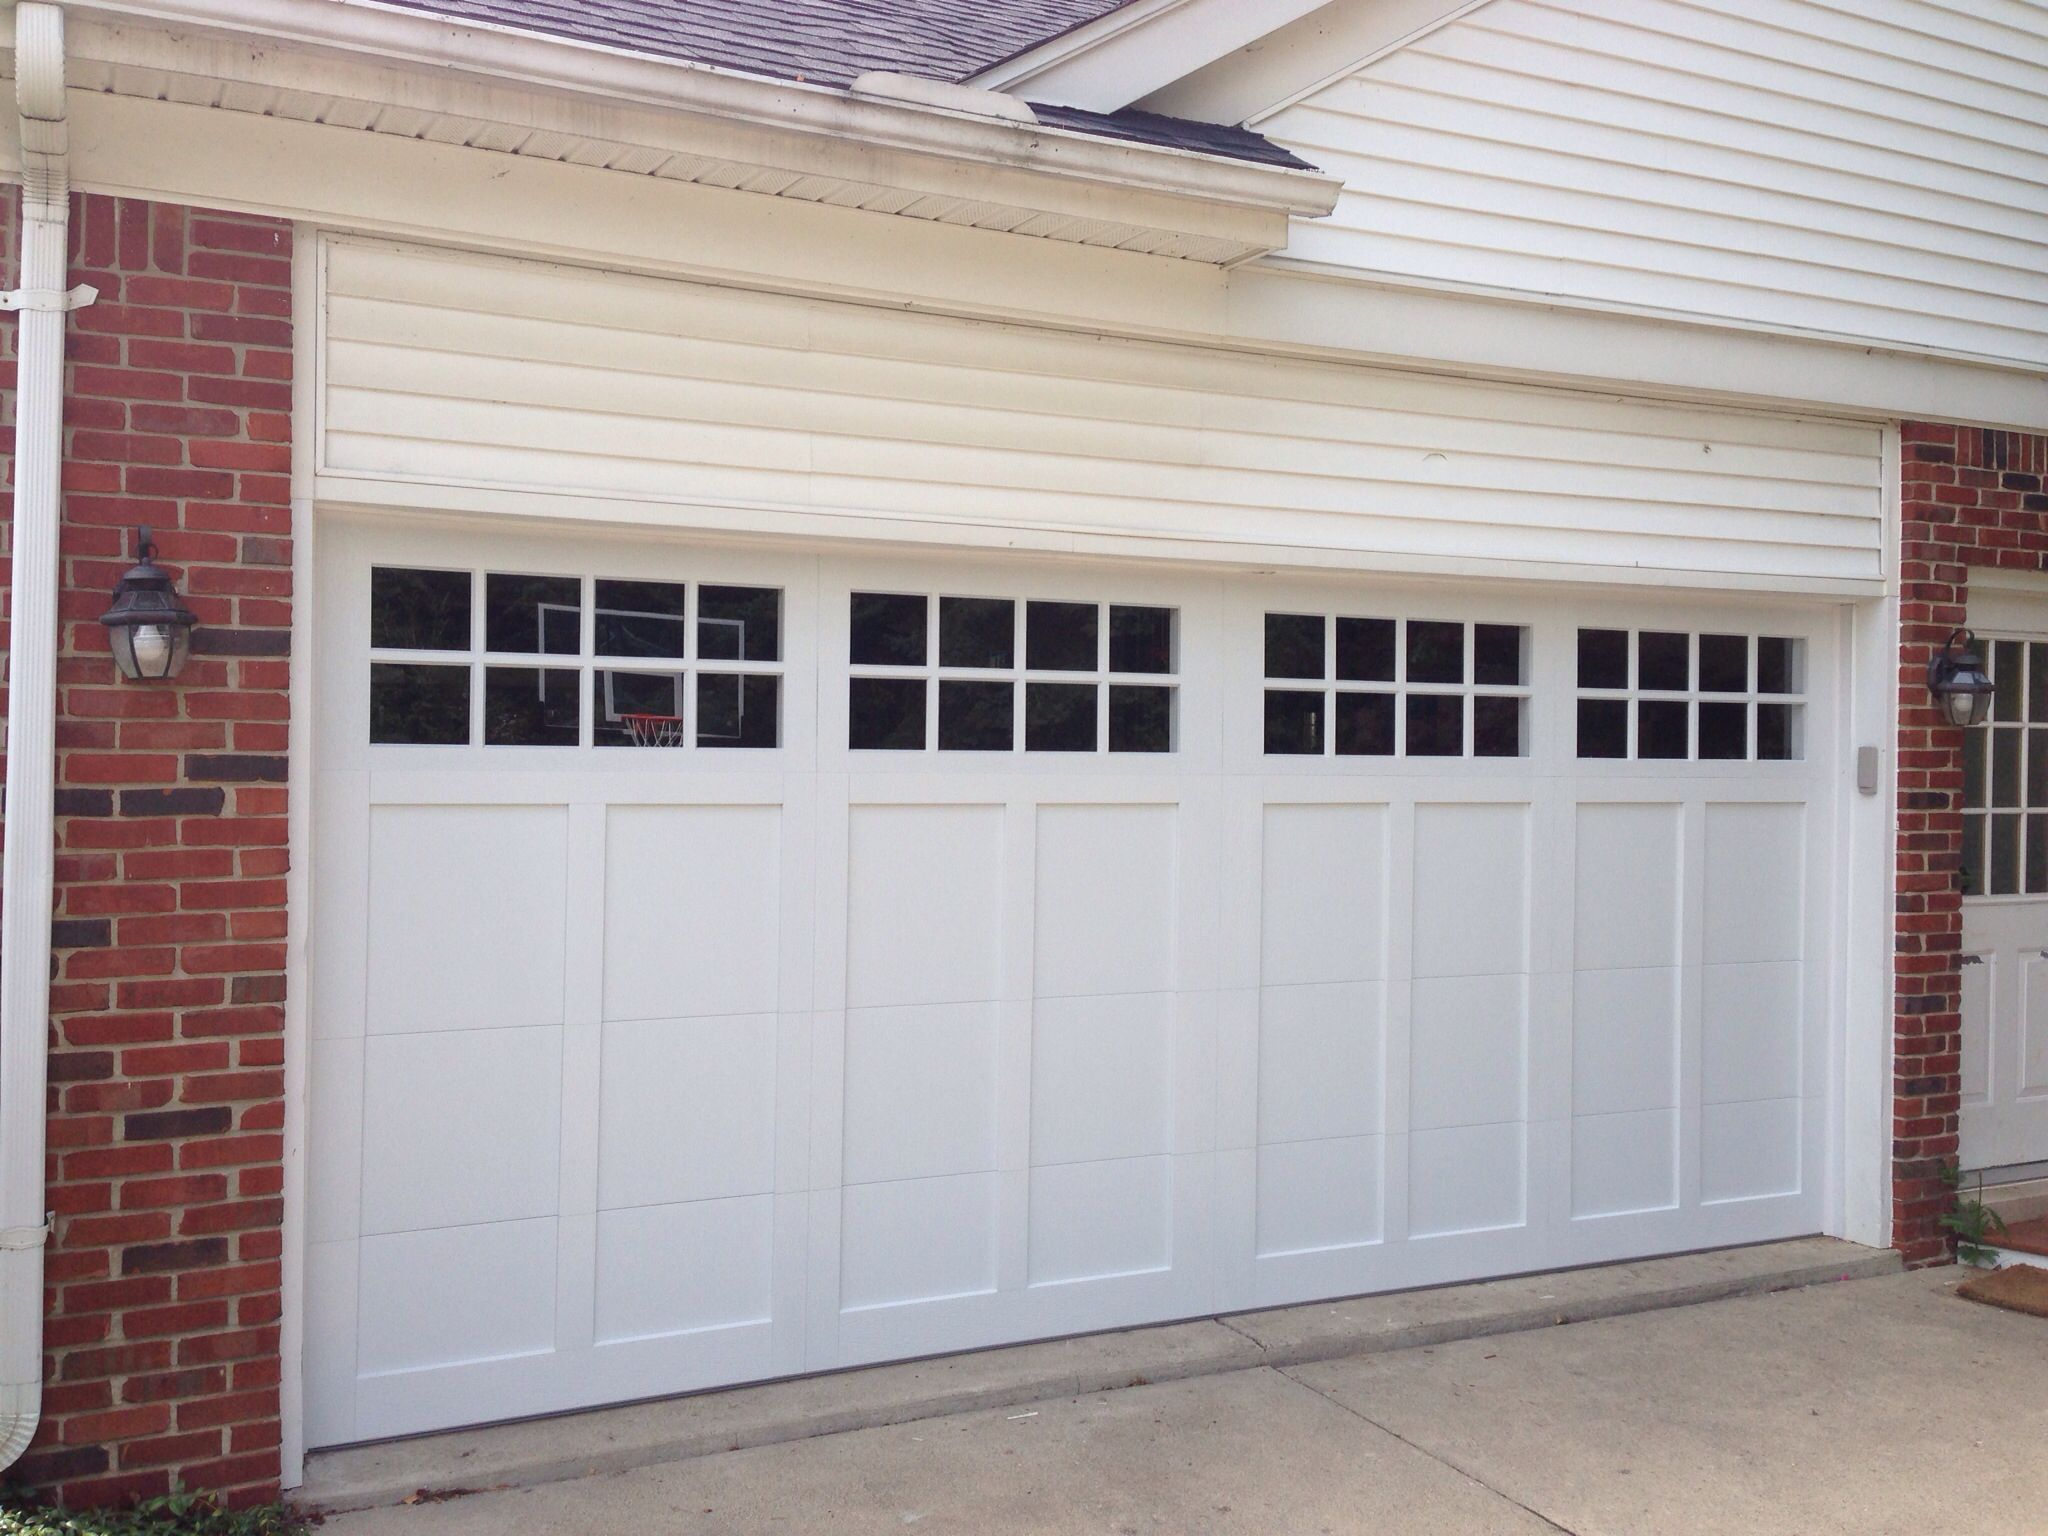 Garage Door Repair Jackson Mi 16 X 7 C H I Garage Door Model 5330 Color White Window